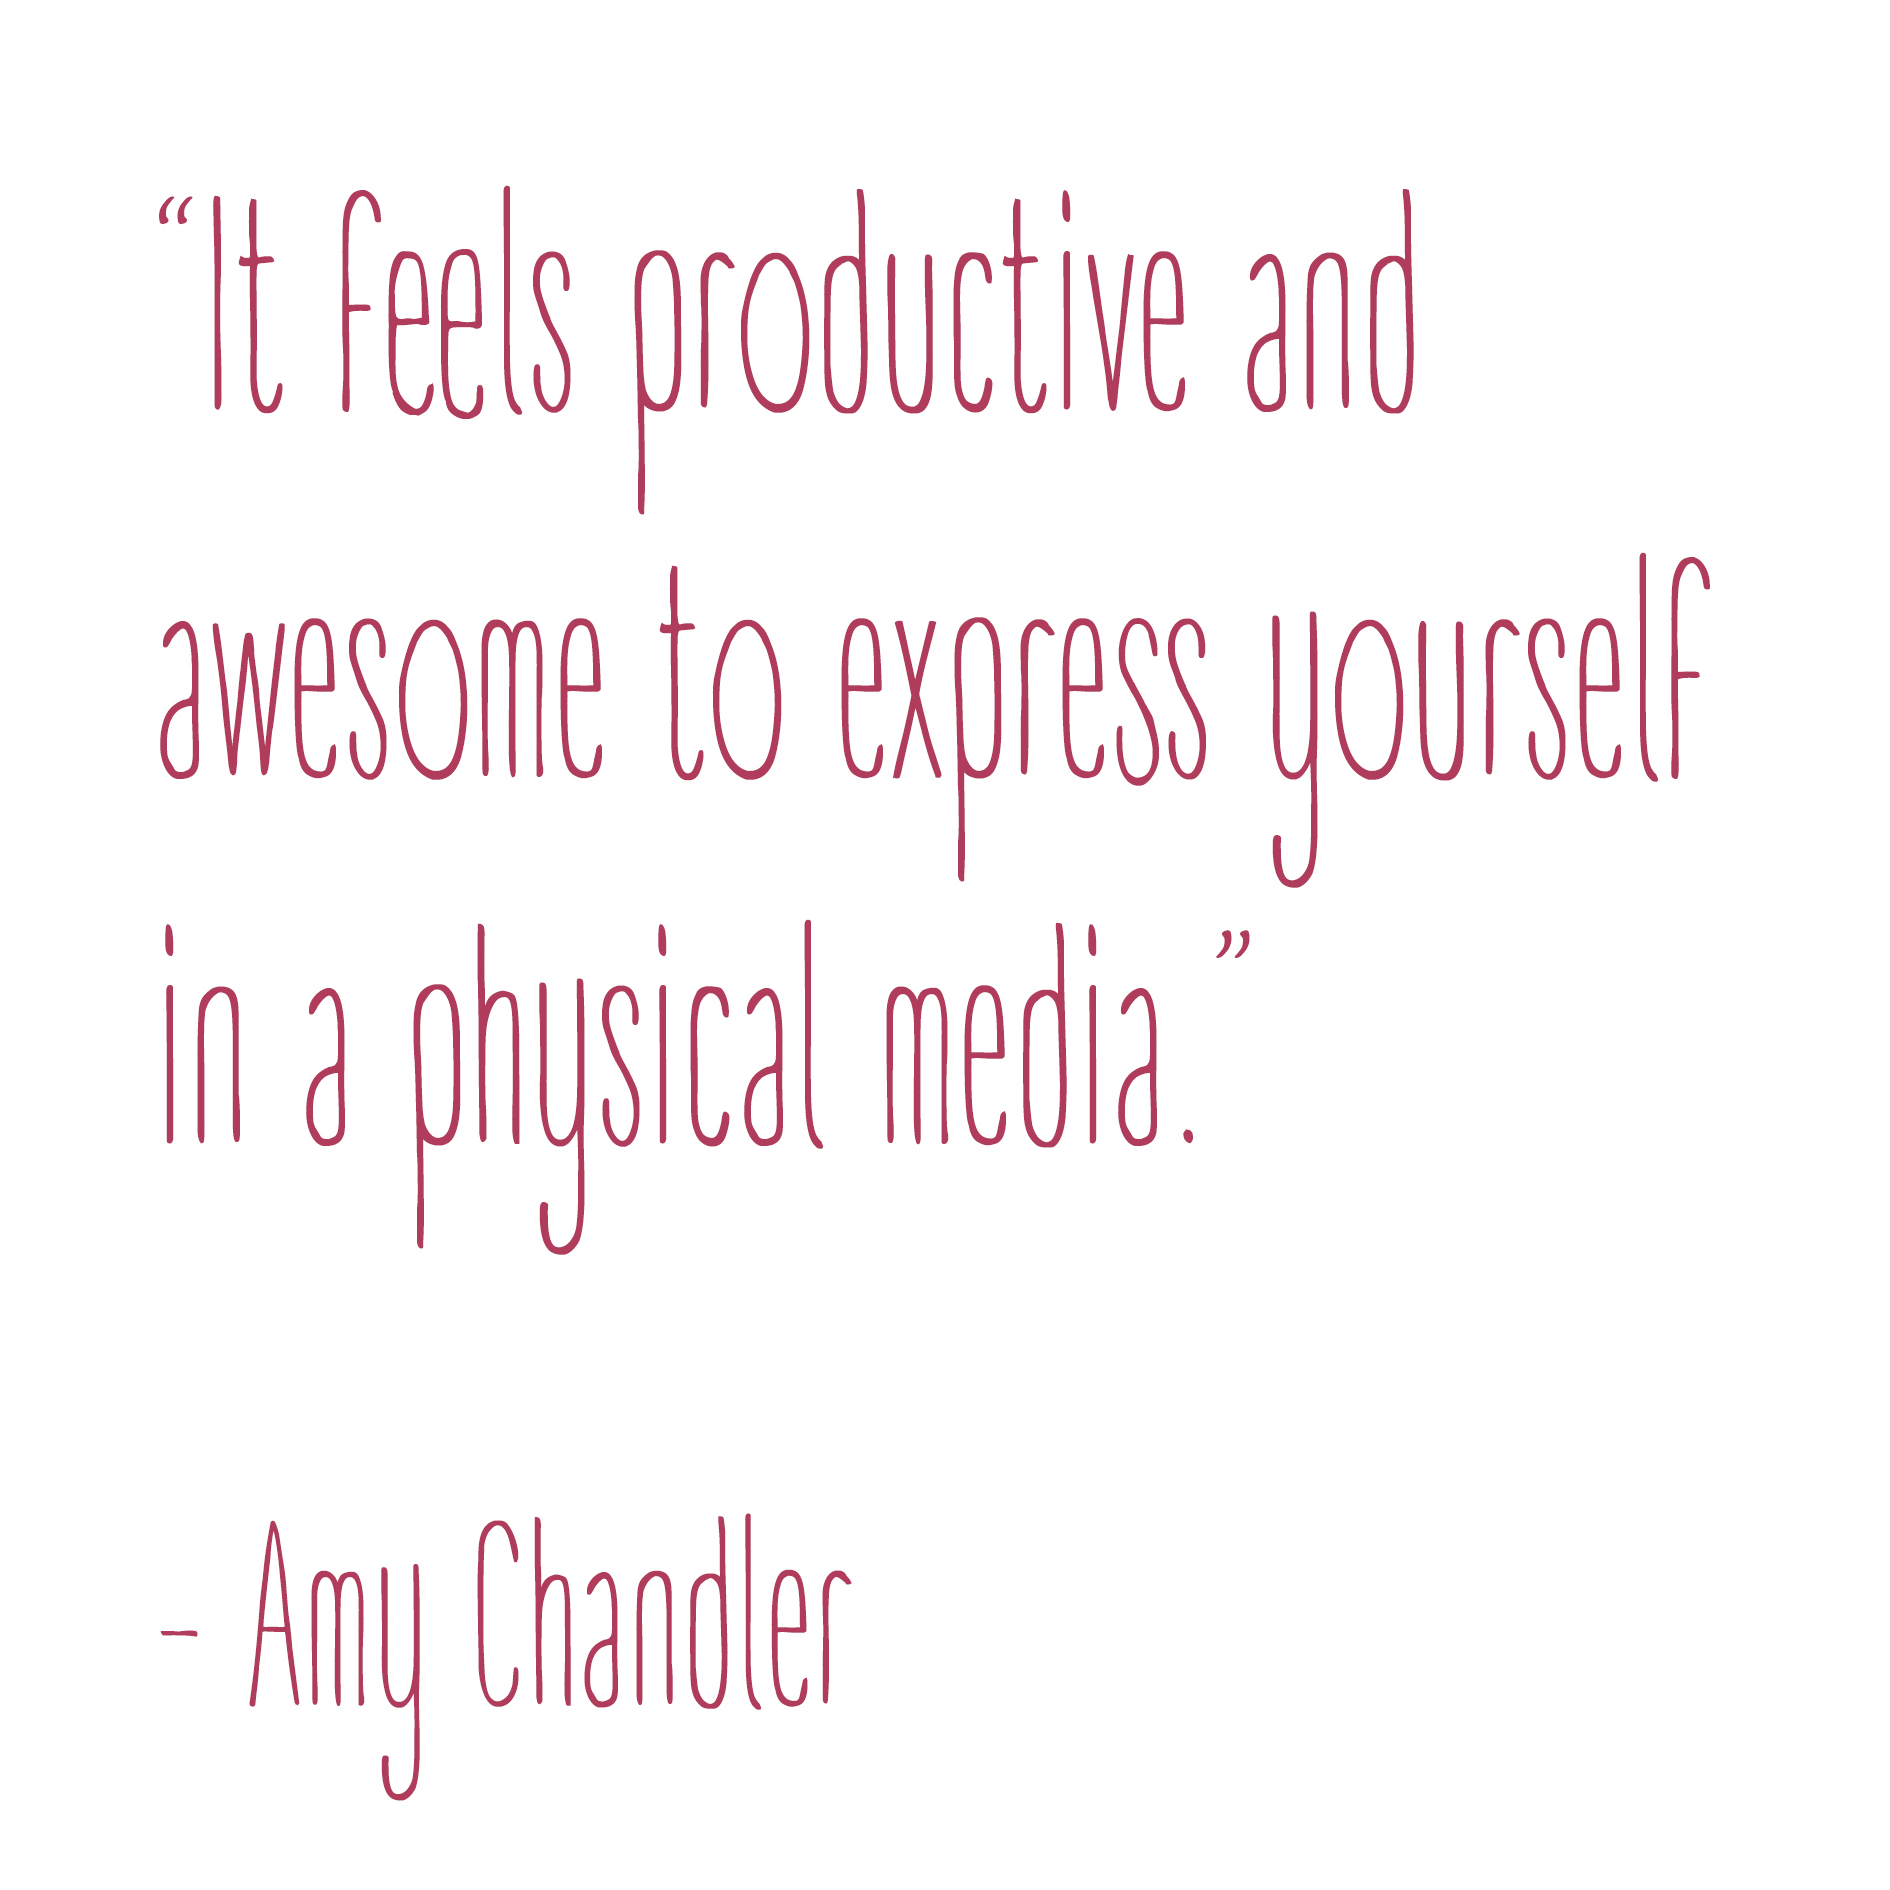 Amy.chandler.qoute